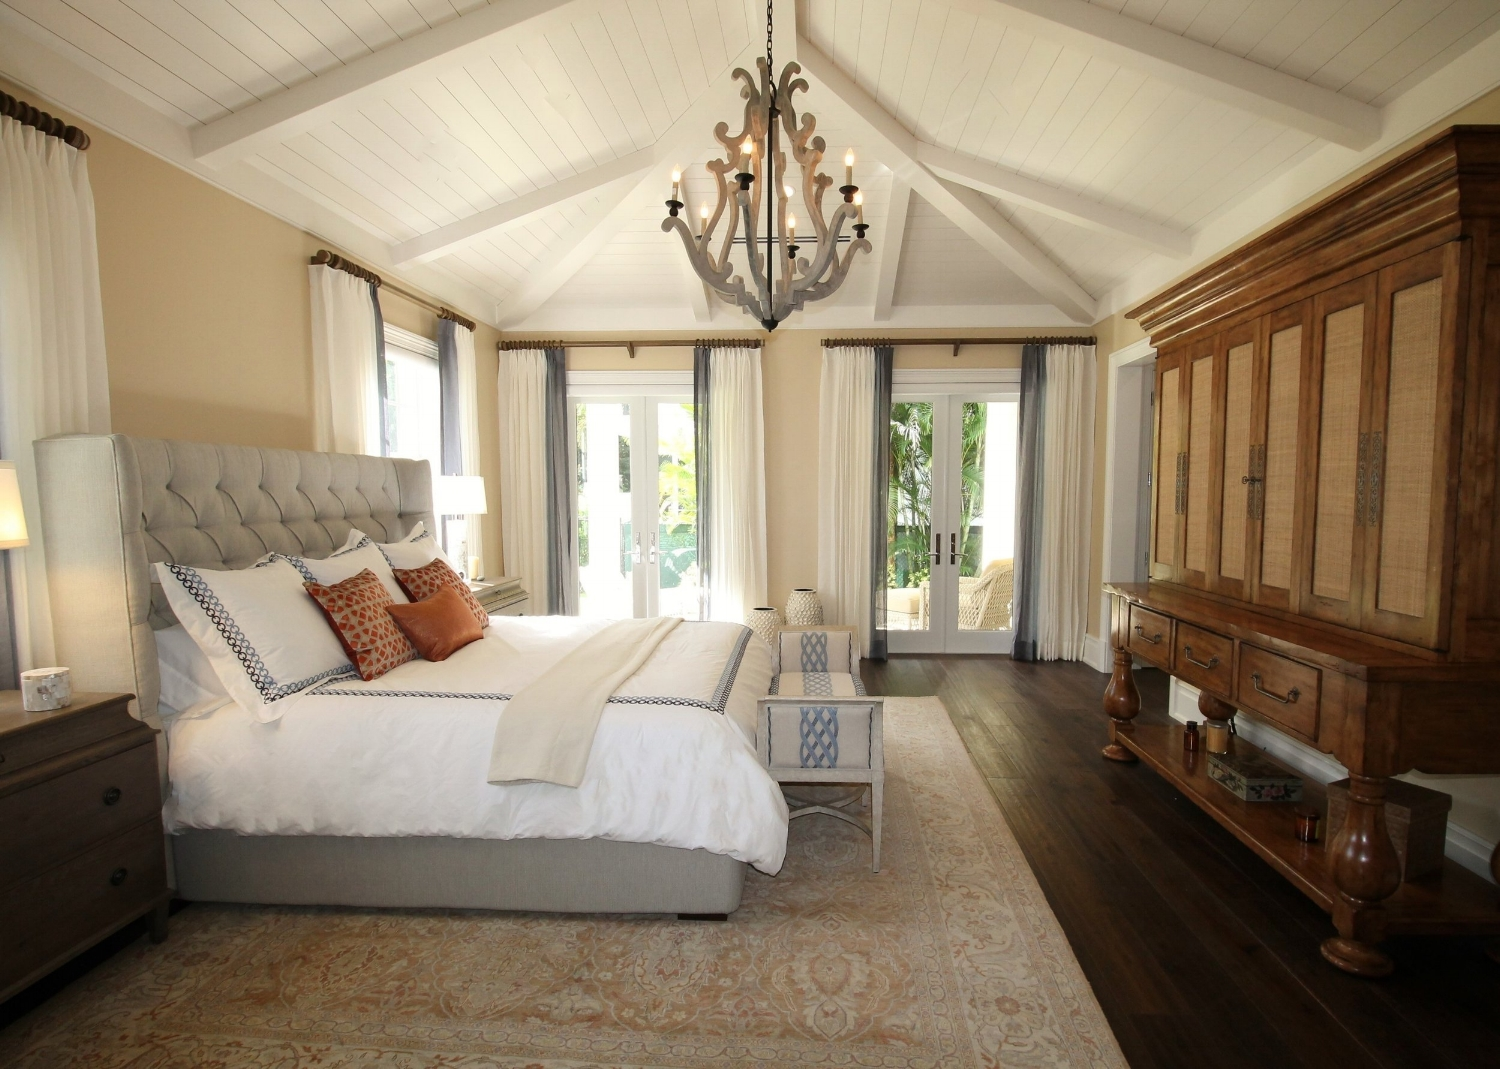 coffered-ceiling-vaulted-room-addition-bed-bedroom-ceiling-262048.jpg